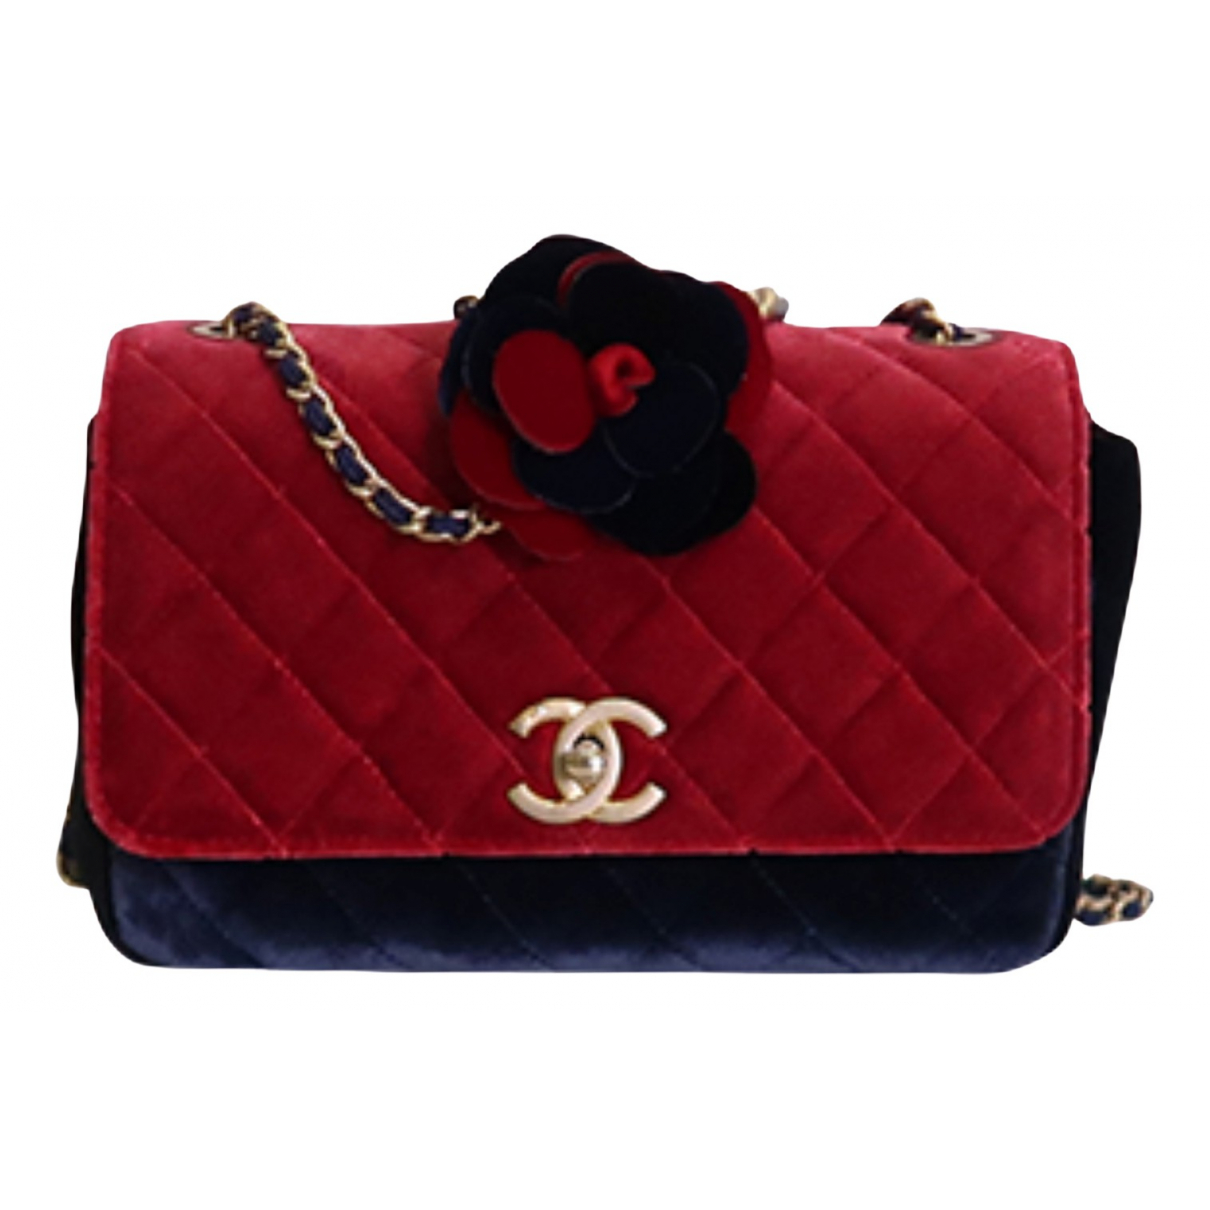 Chanel - Sac a main   pour femme en velours - multicolore